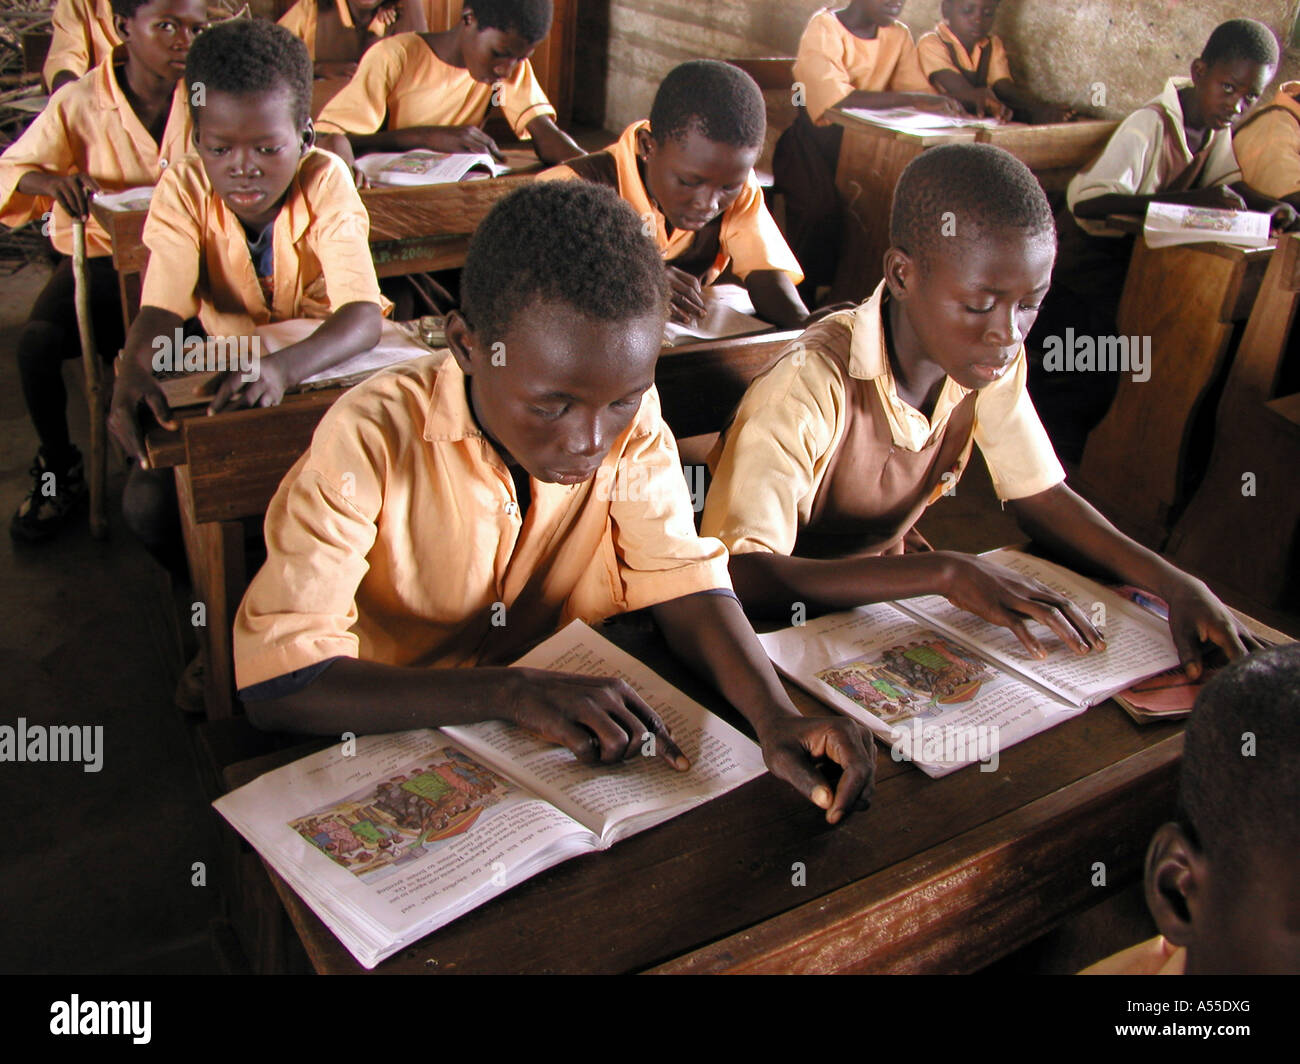 Painet ik0339 ghana school supported by crs bolgatanga country developing nation less economically developed culture - Stock Image